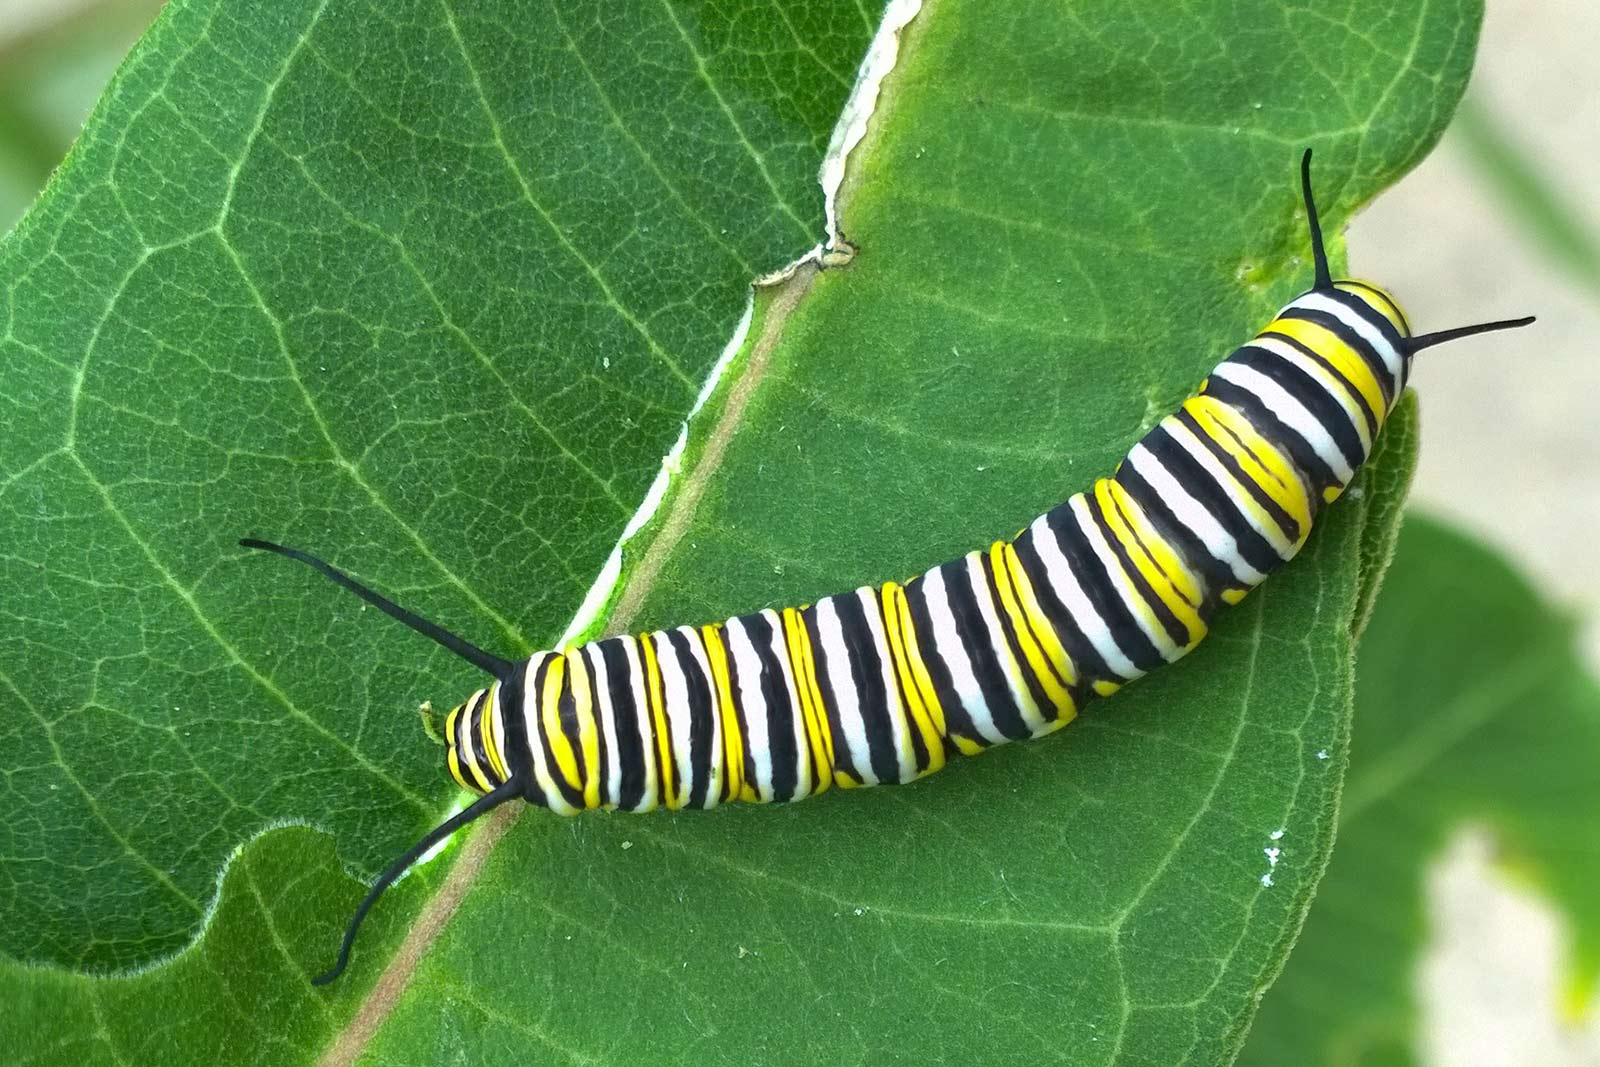 Monarch butterfly larvae